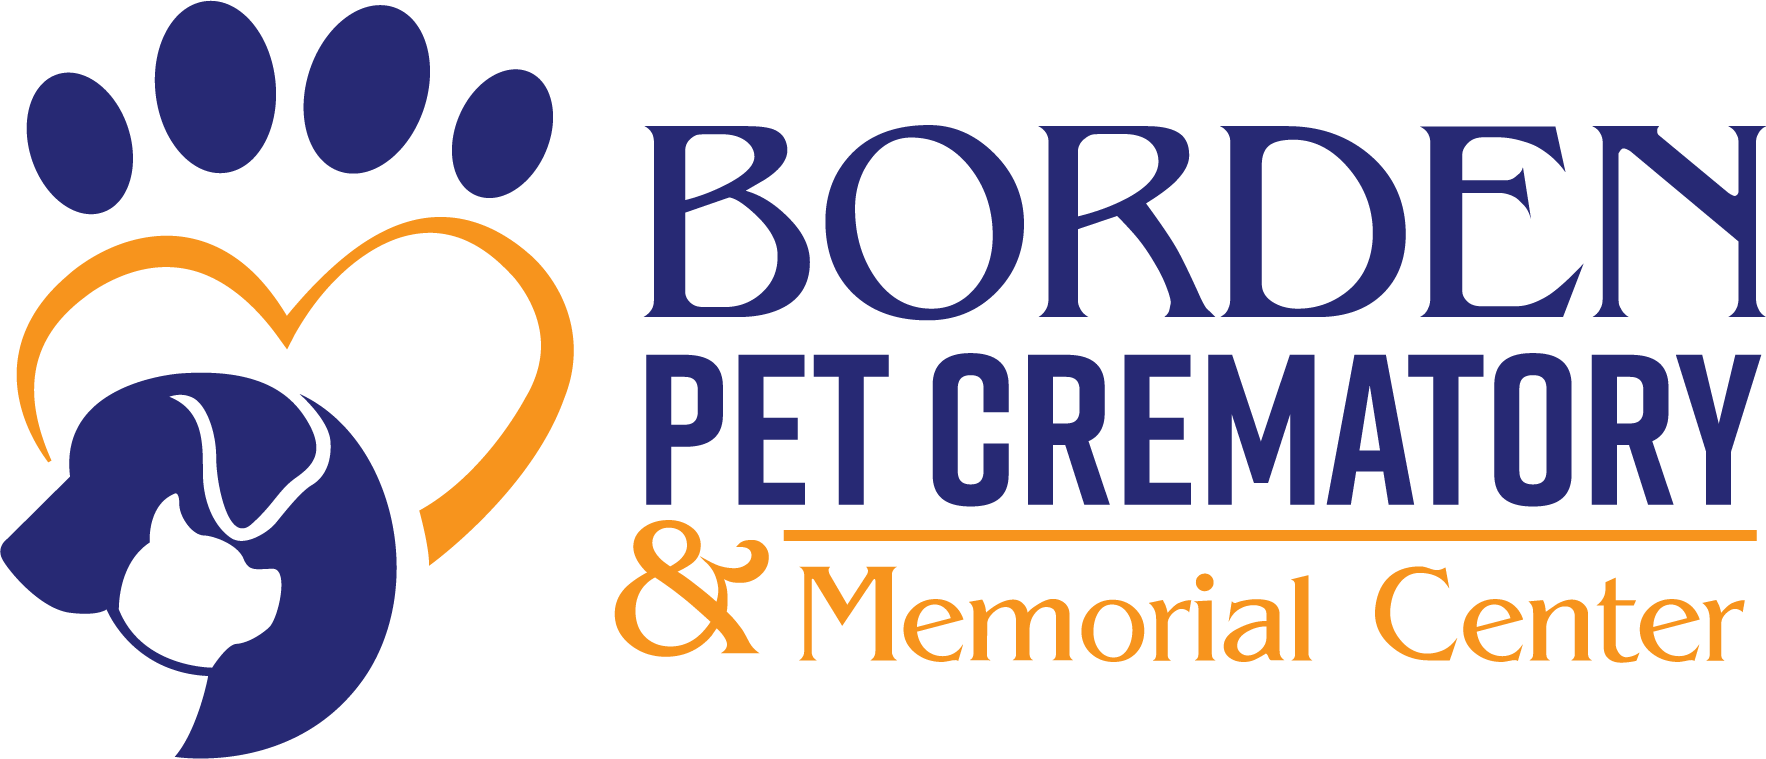 Borden Pet Crematory & Memorial Center